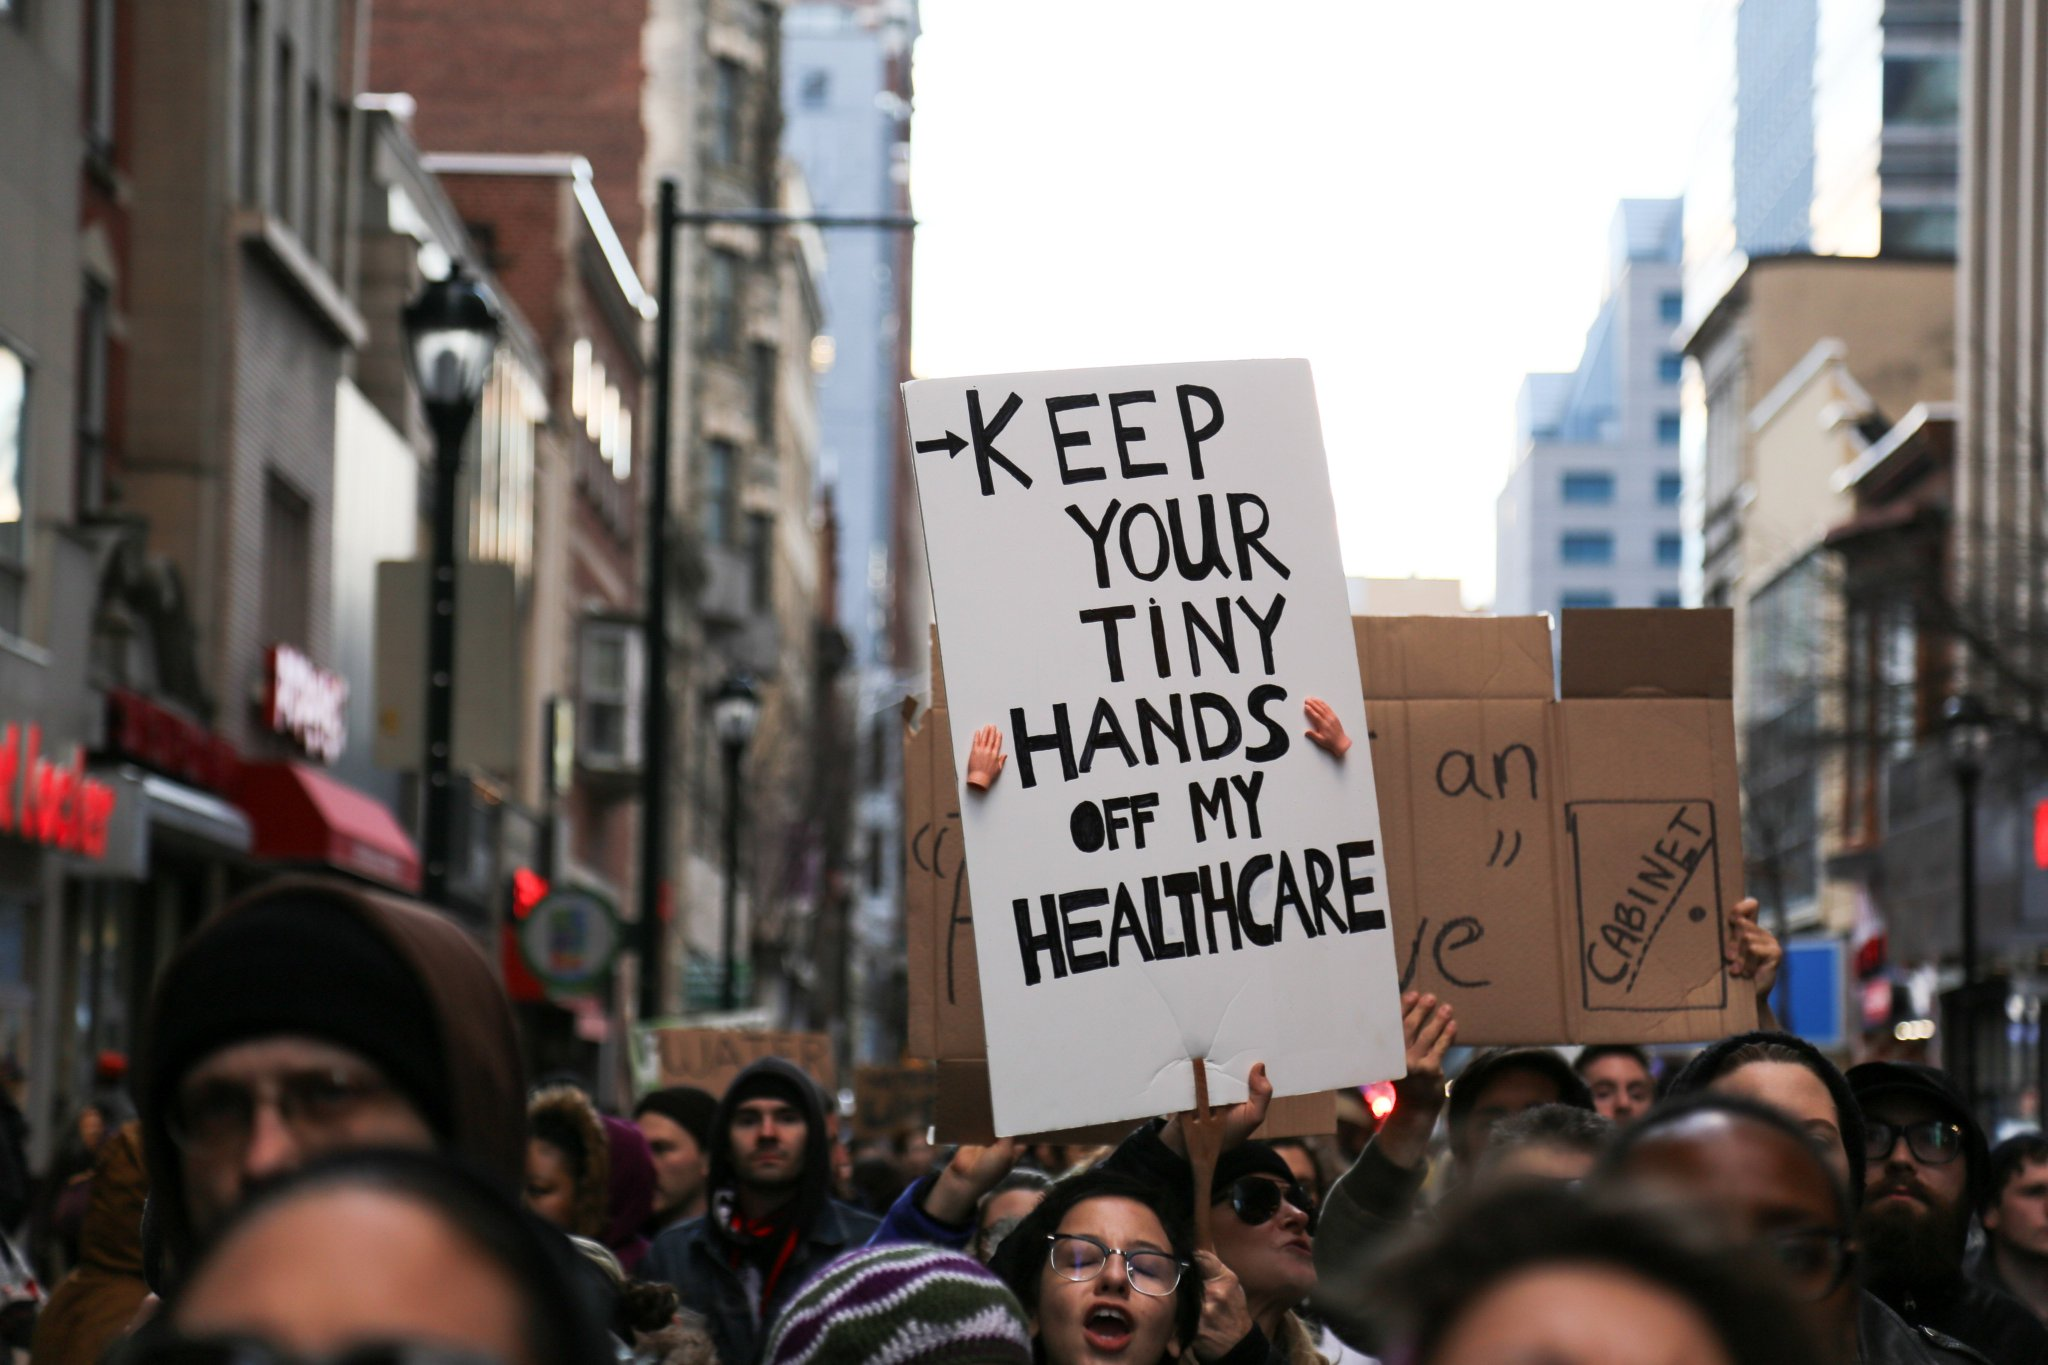 ICYMI: Here's all the best (and funniest!) signs from yesterday's anti-Trump resistance march in Philadelphia... https://t.co/eRYSIDmOJ8 https://t.co/PbqoXcA08R